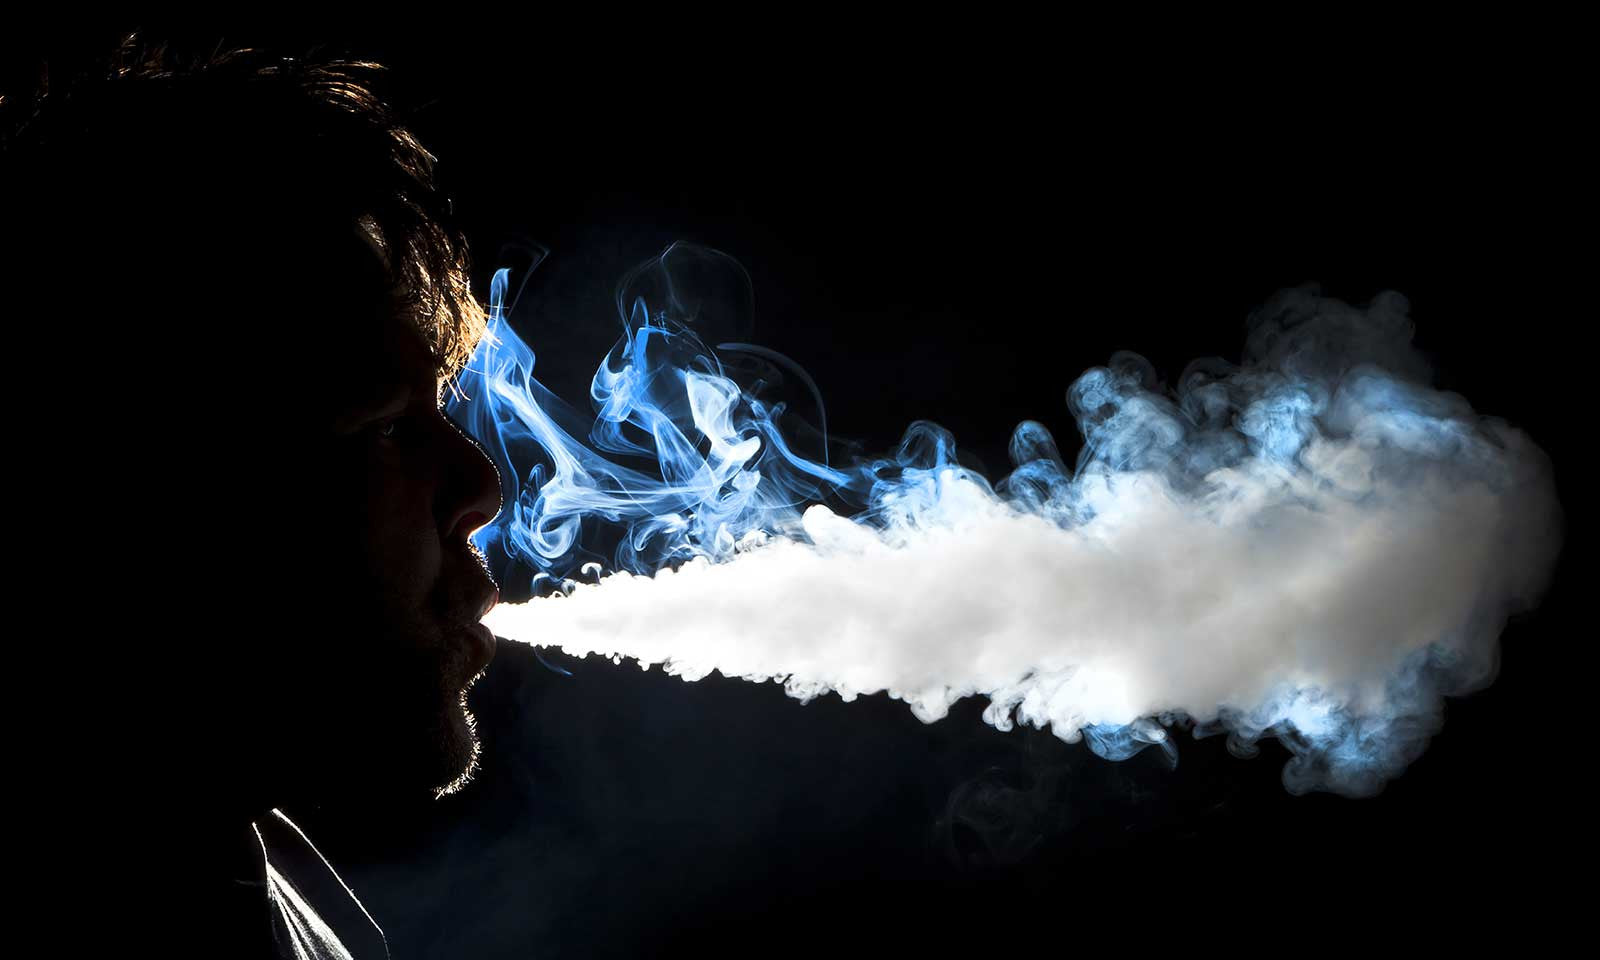 August 8 prohibition & the FDA e-cig regulations: Vaping braces for 'industry freeze'